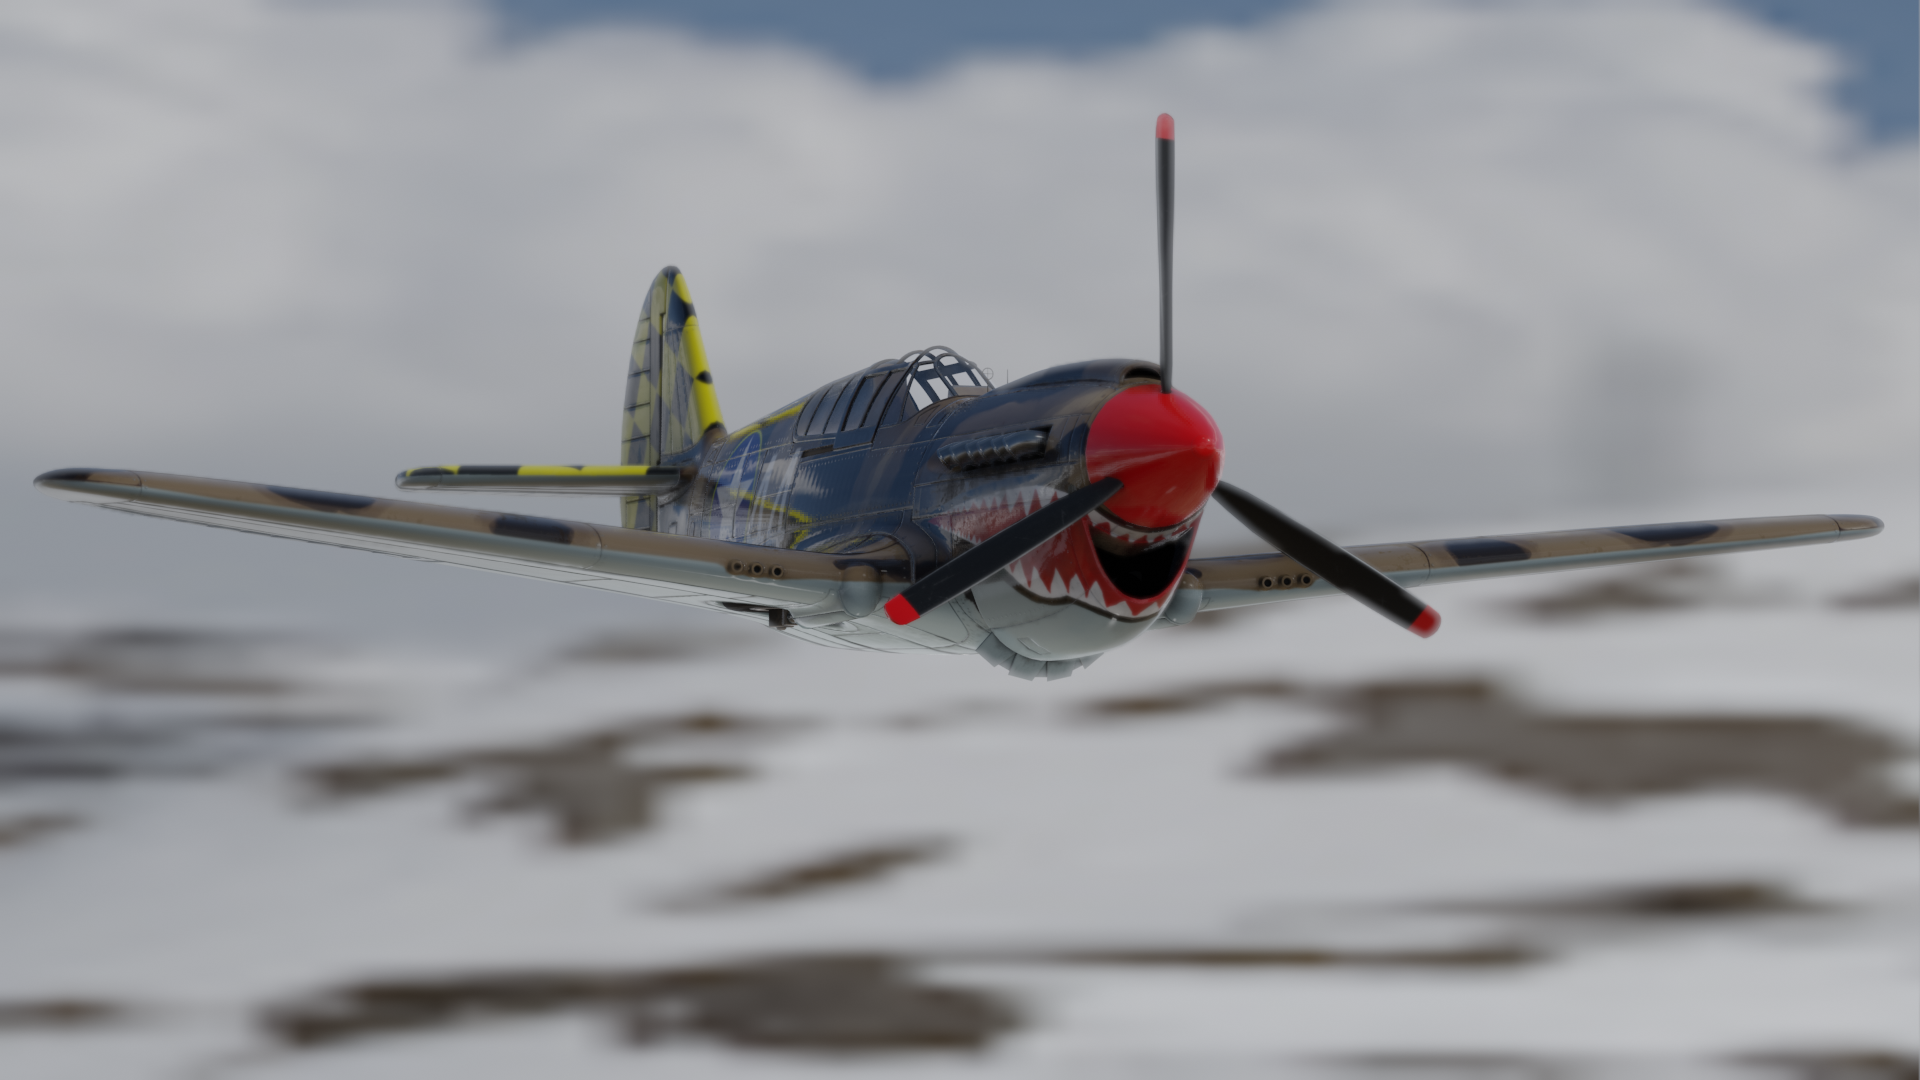 P40 Warhawk preview image 5